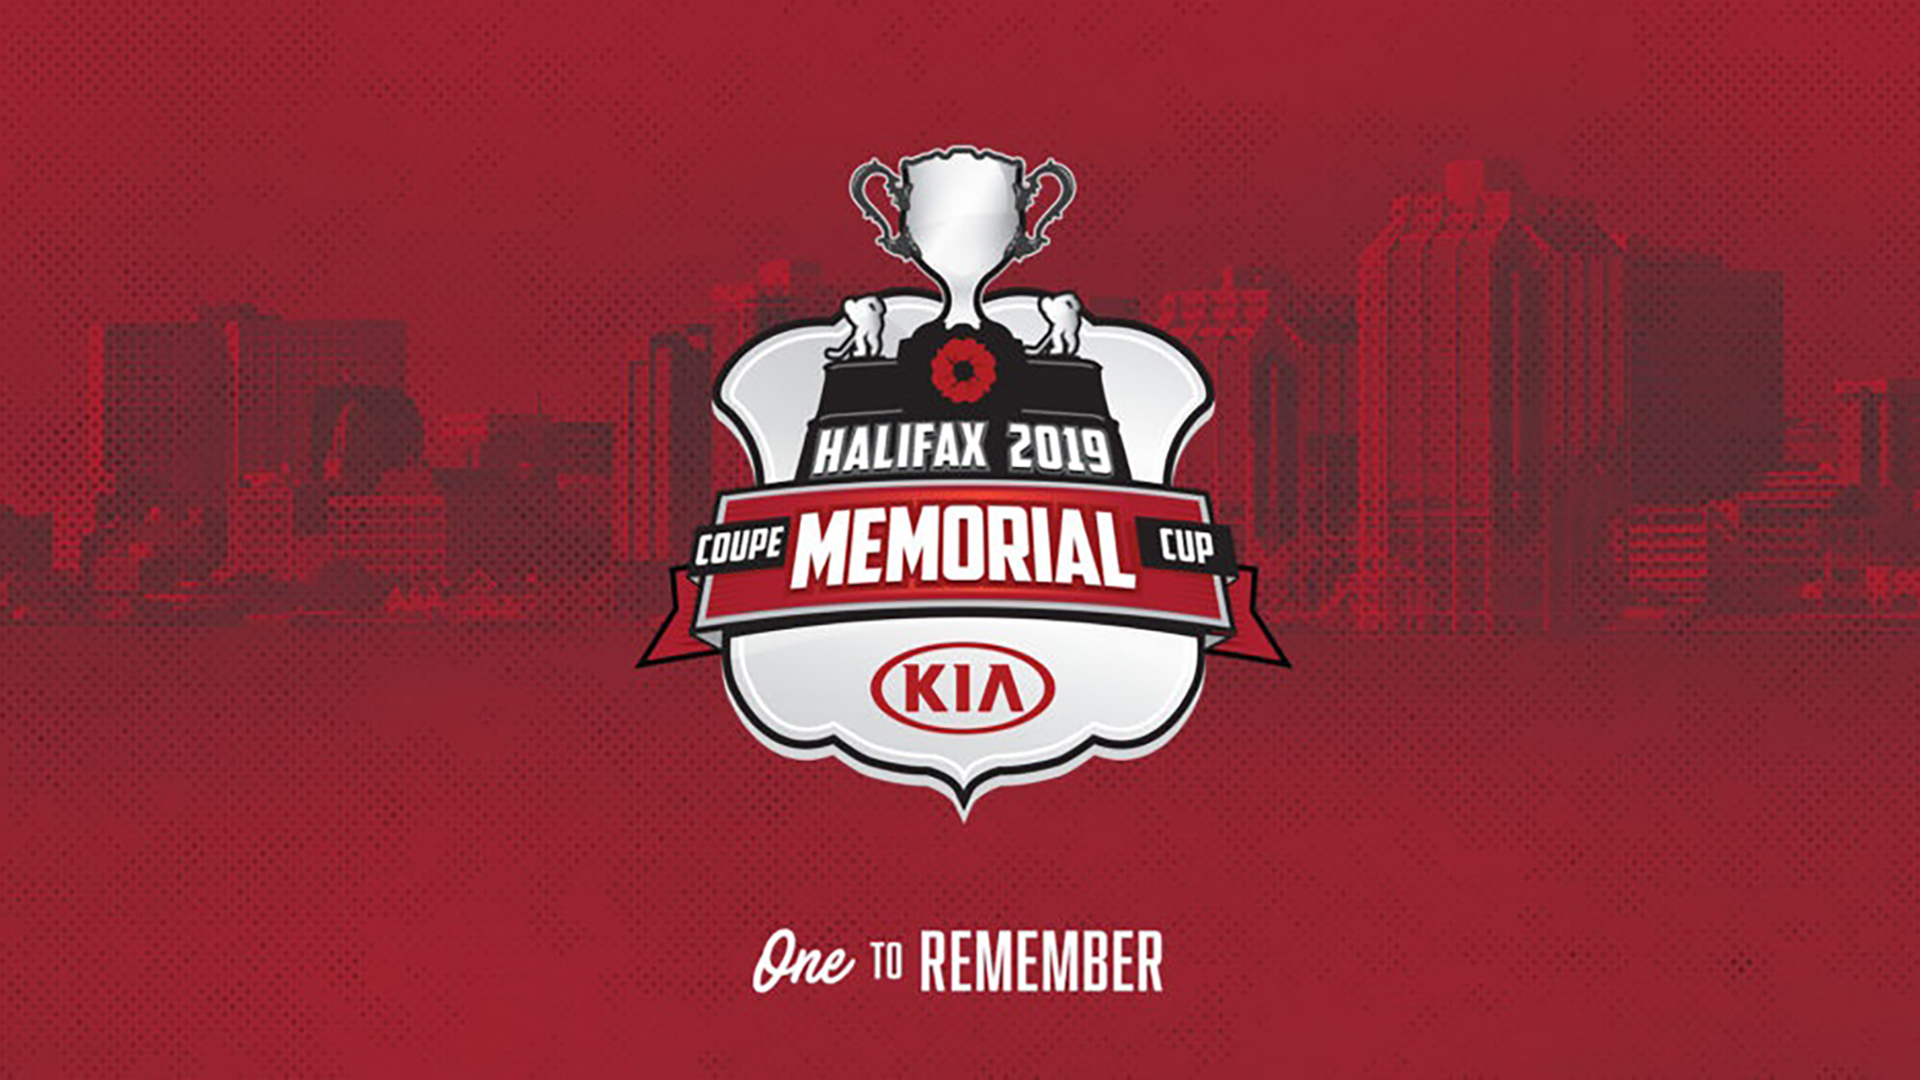 2019 Memorial Cup Discover Halifax